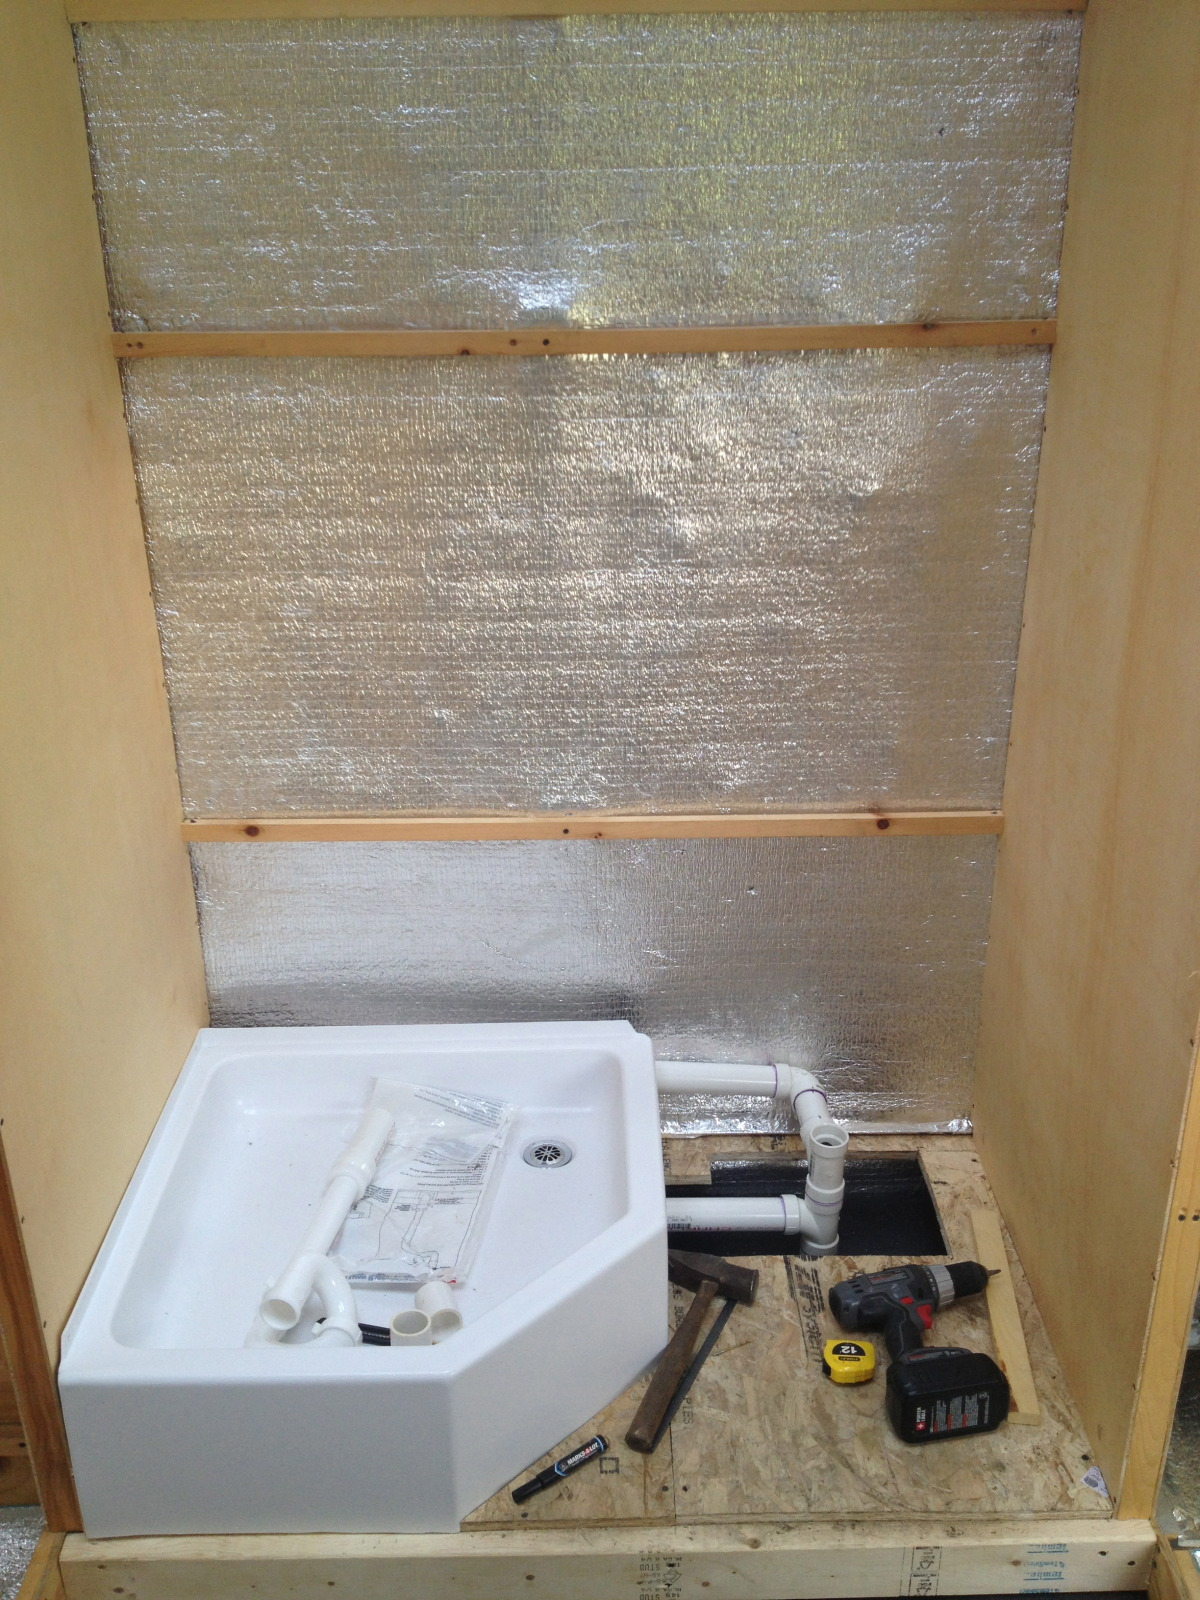 The kitchen sink, shower and bathroom sink all flow together into one pipe so there is only one hole draining into the top of gray water tank.  This shows the addition of another drain pipe running against the wall toward the front of the bus for the kitchen sink.